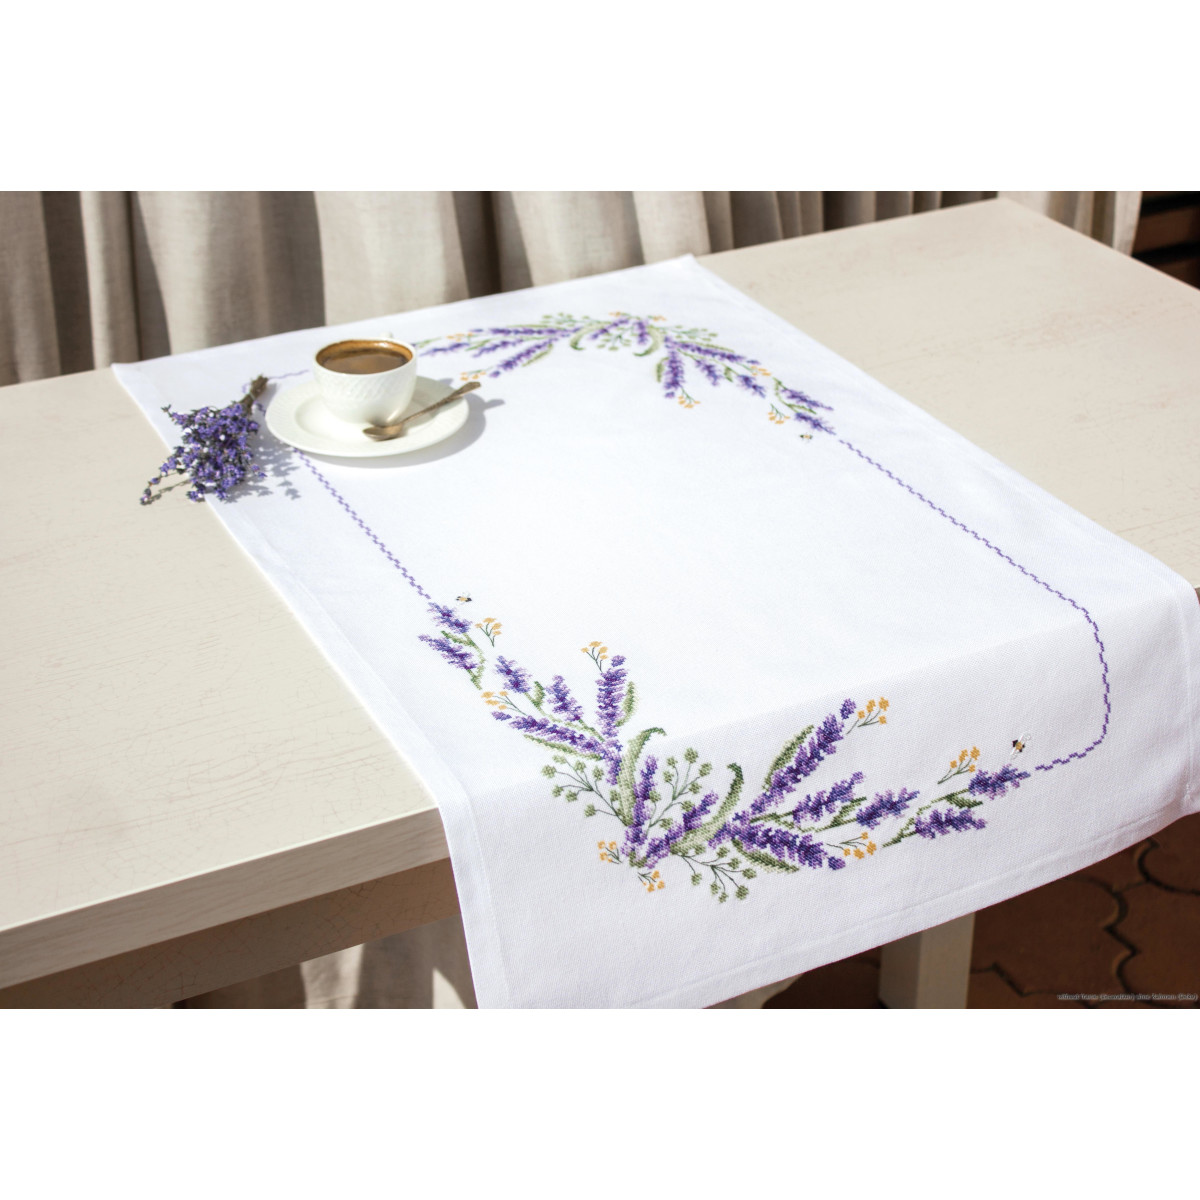 Cross Stitch Kit Luca-S  FM003 Table Runner 76x46 cm Embroidery Size 66x36 cm